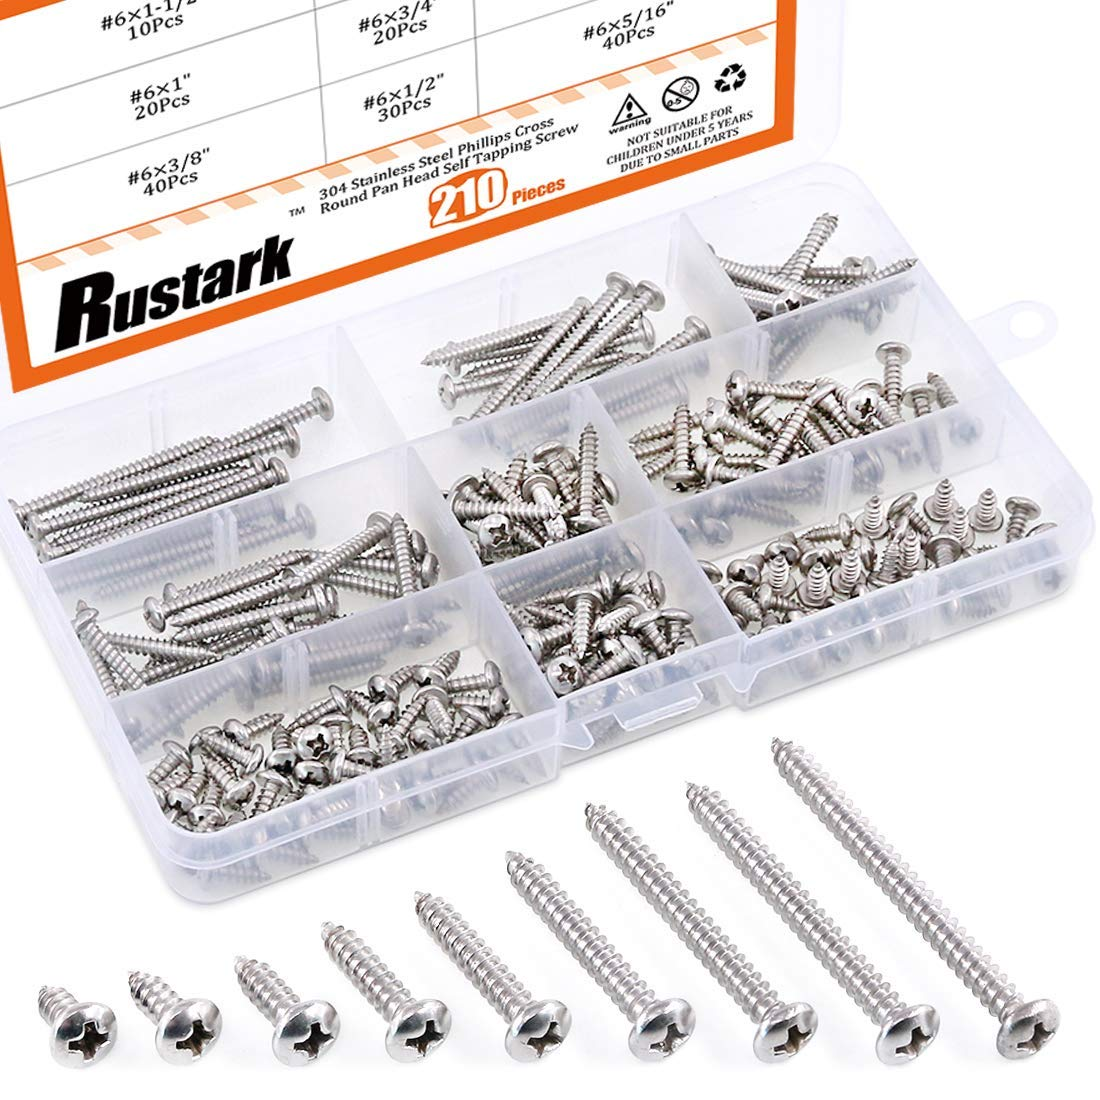 #10 3//8 to 1-3//4 Rustark 150Pcs 304 Stainless Steel Flat Head Phillips Cross Wood Screw Self Tapping Drilling Screws Assortment Kit